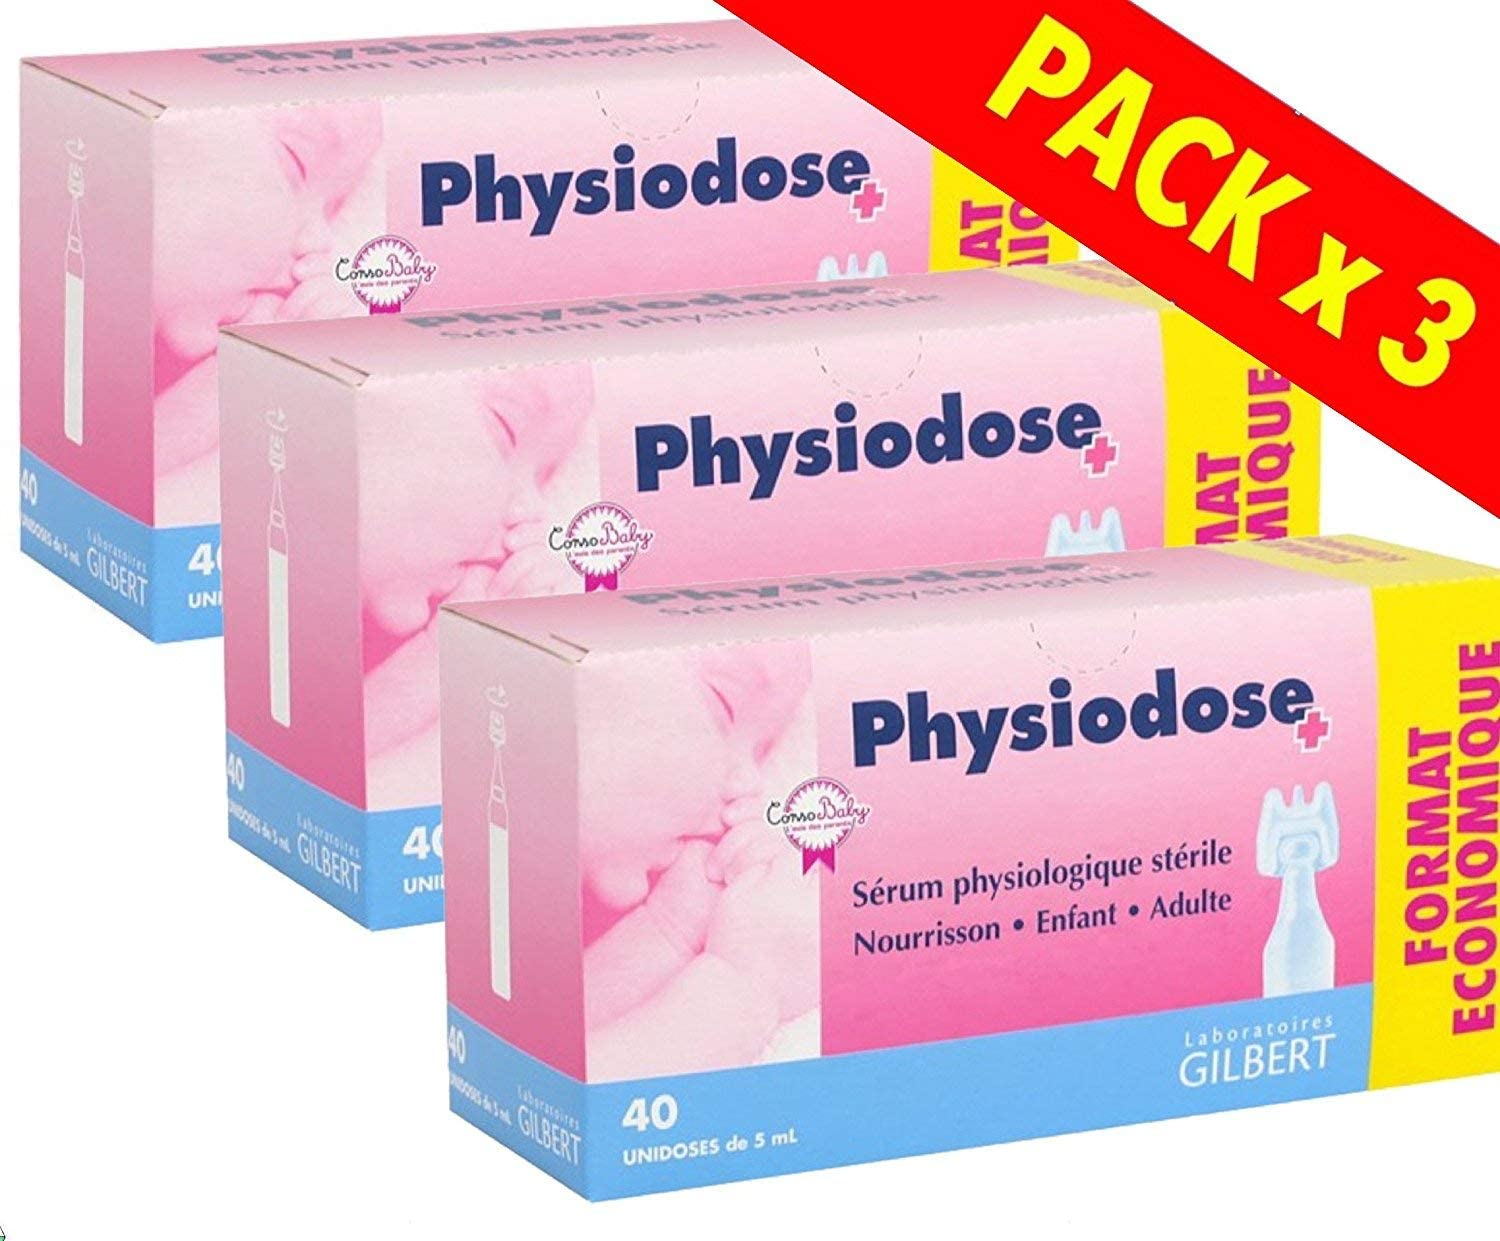 Physiodose Physiological Serum 3 Boxes of 40 Single Doses